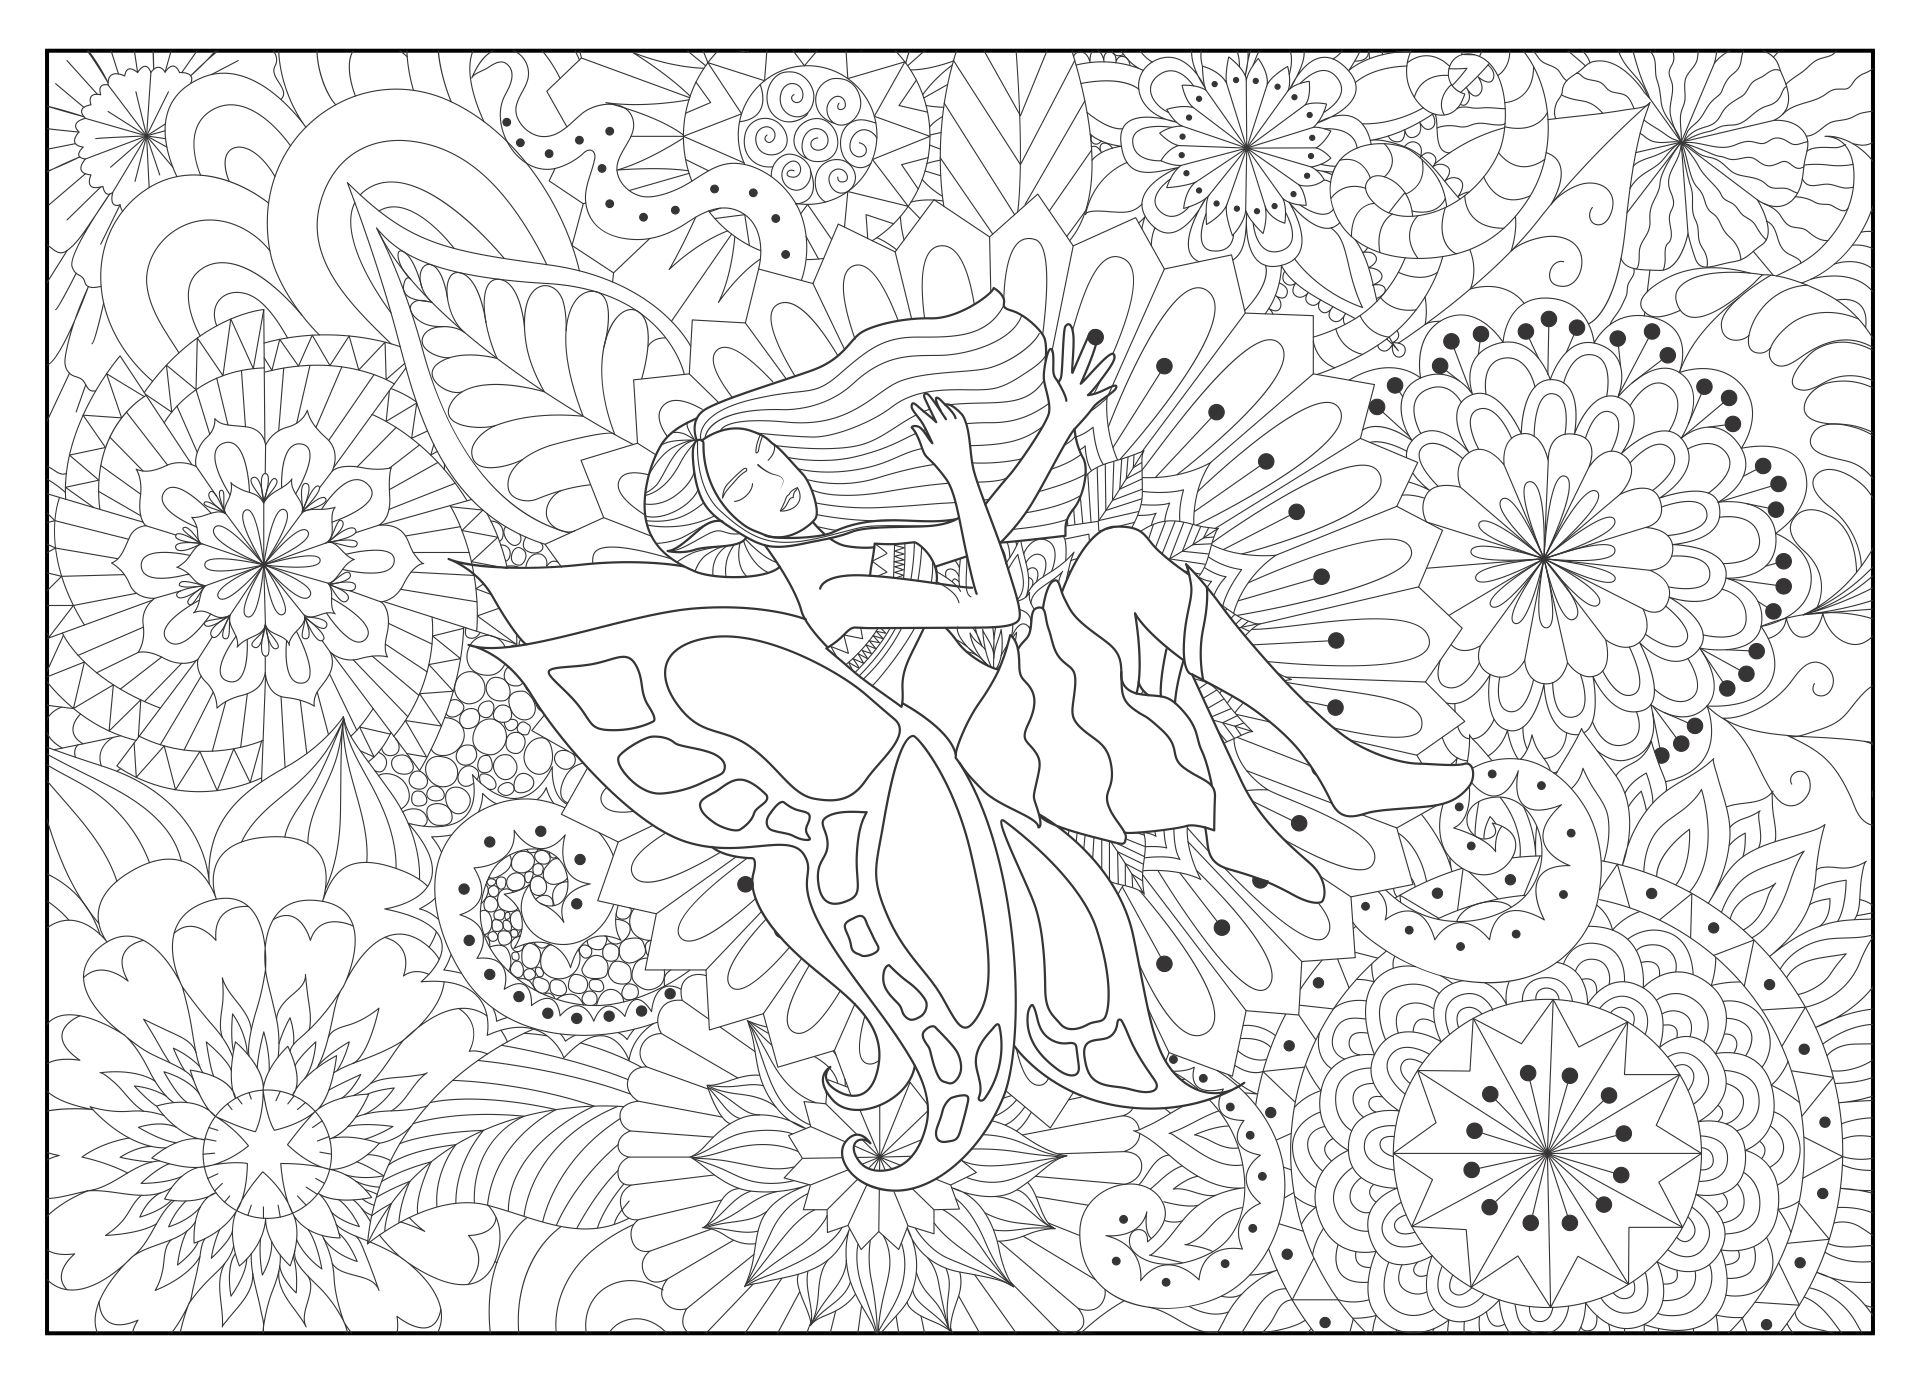 8 X 10 Printable Adult Coloring Pages